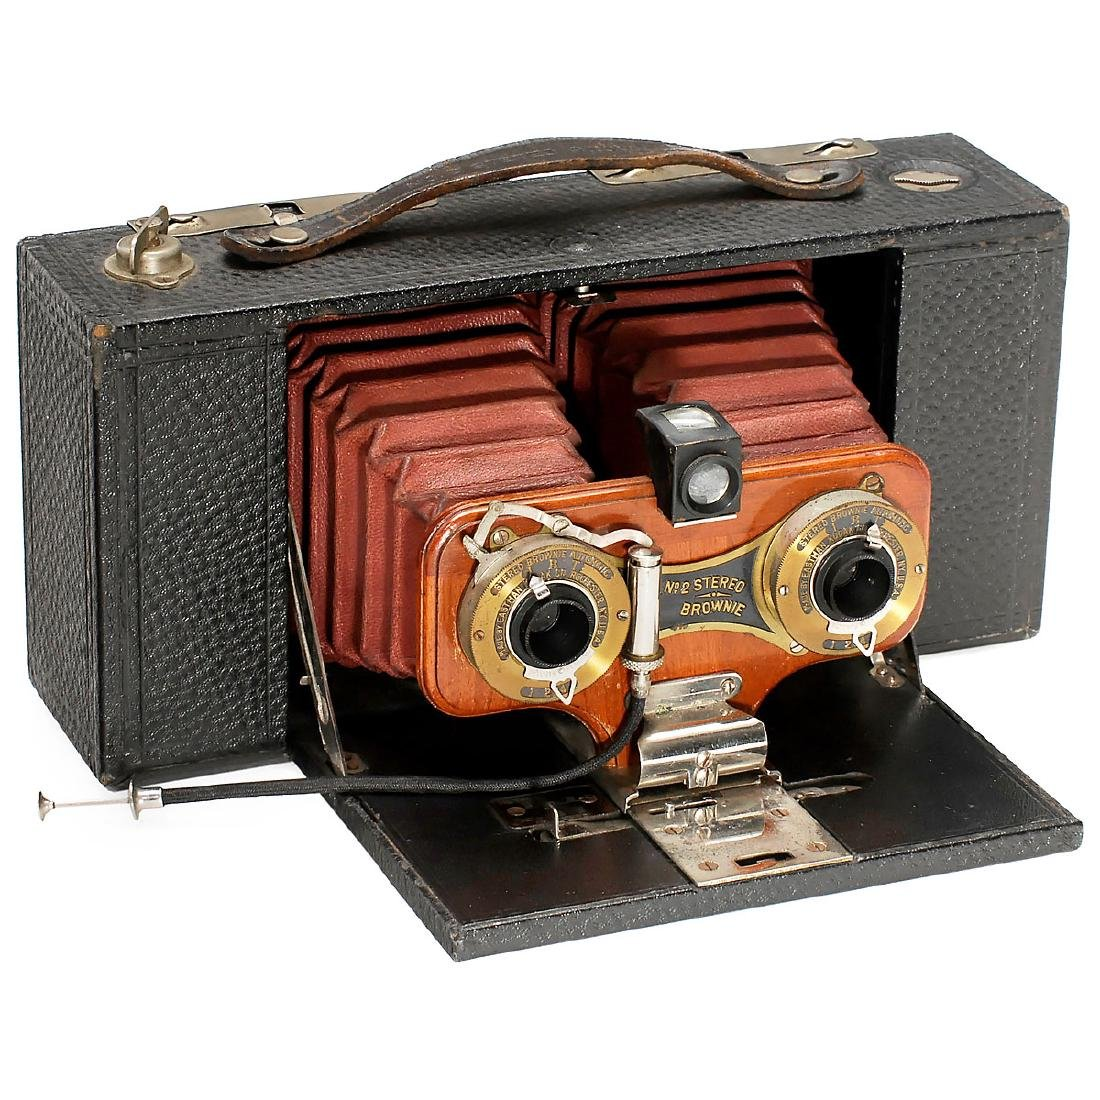 Kodak Stereo Brownie No. 2, 1905